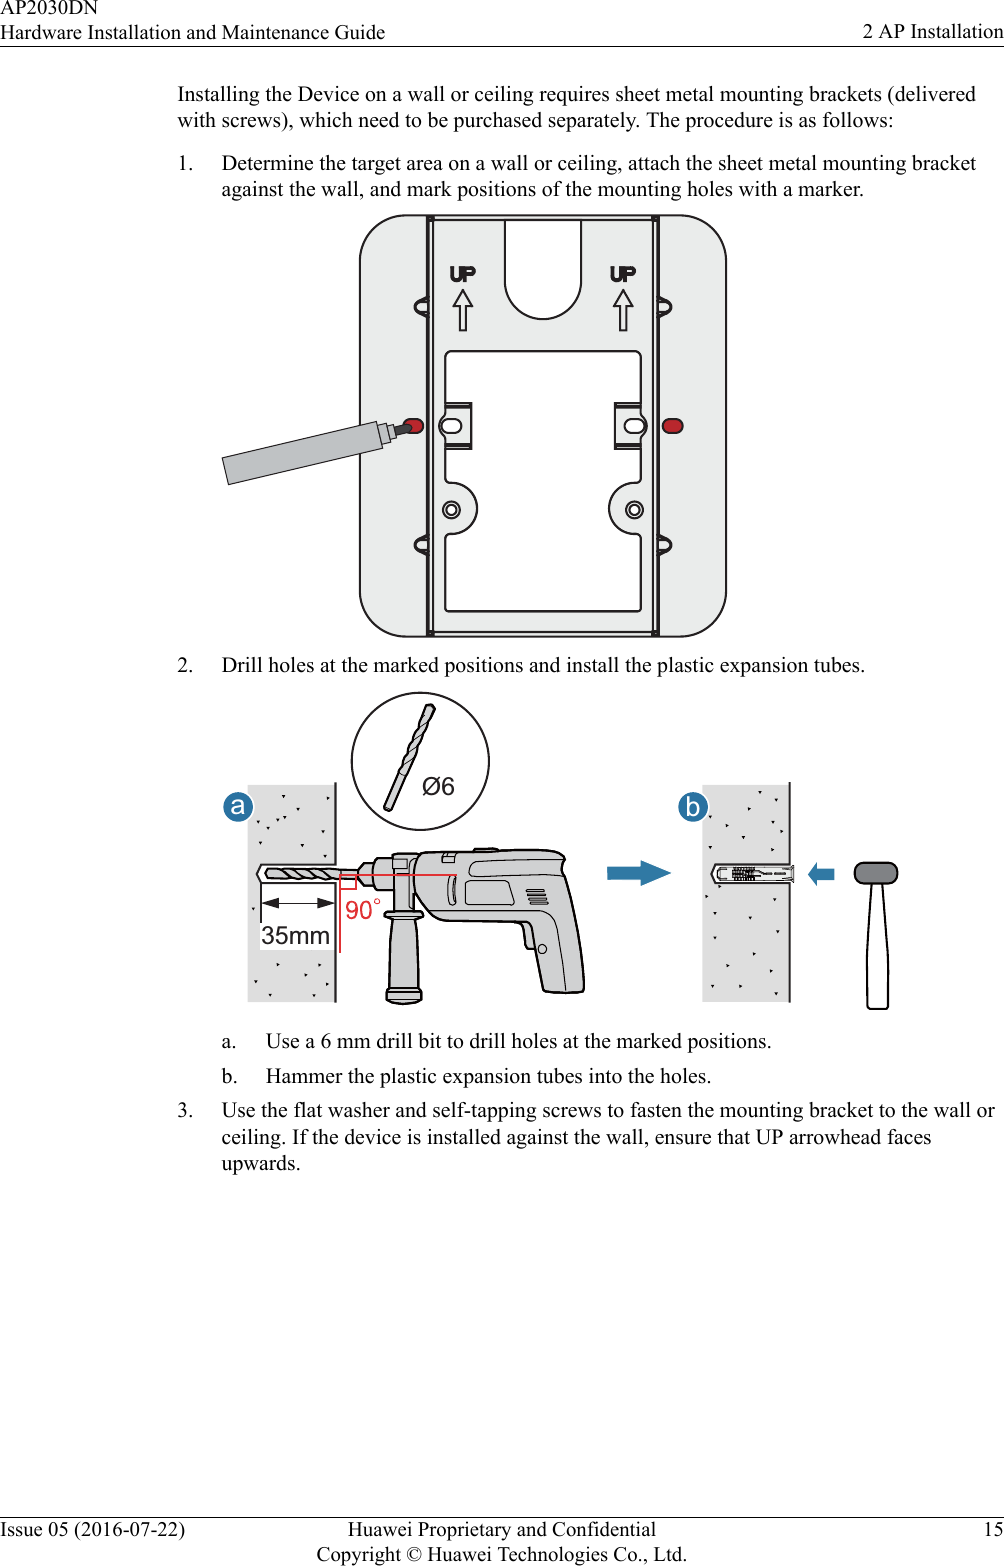 well point installation instructions